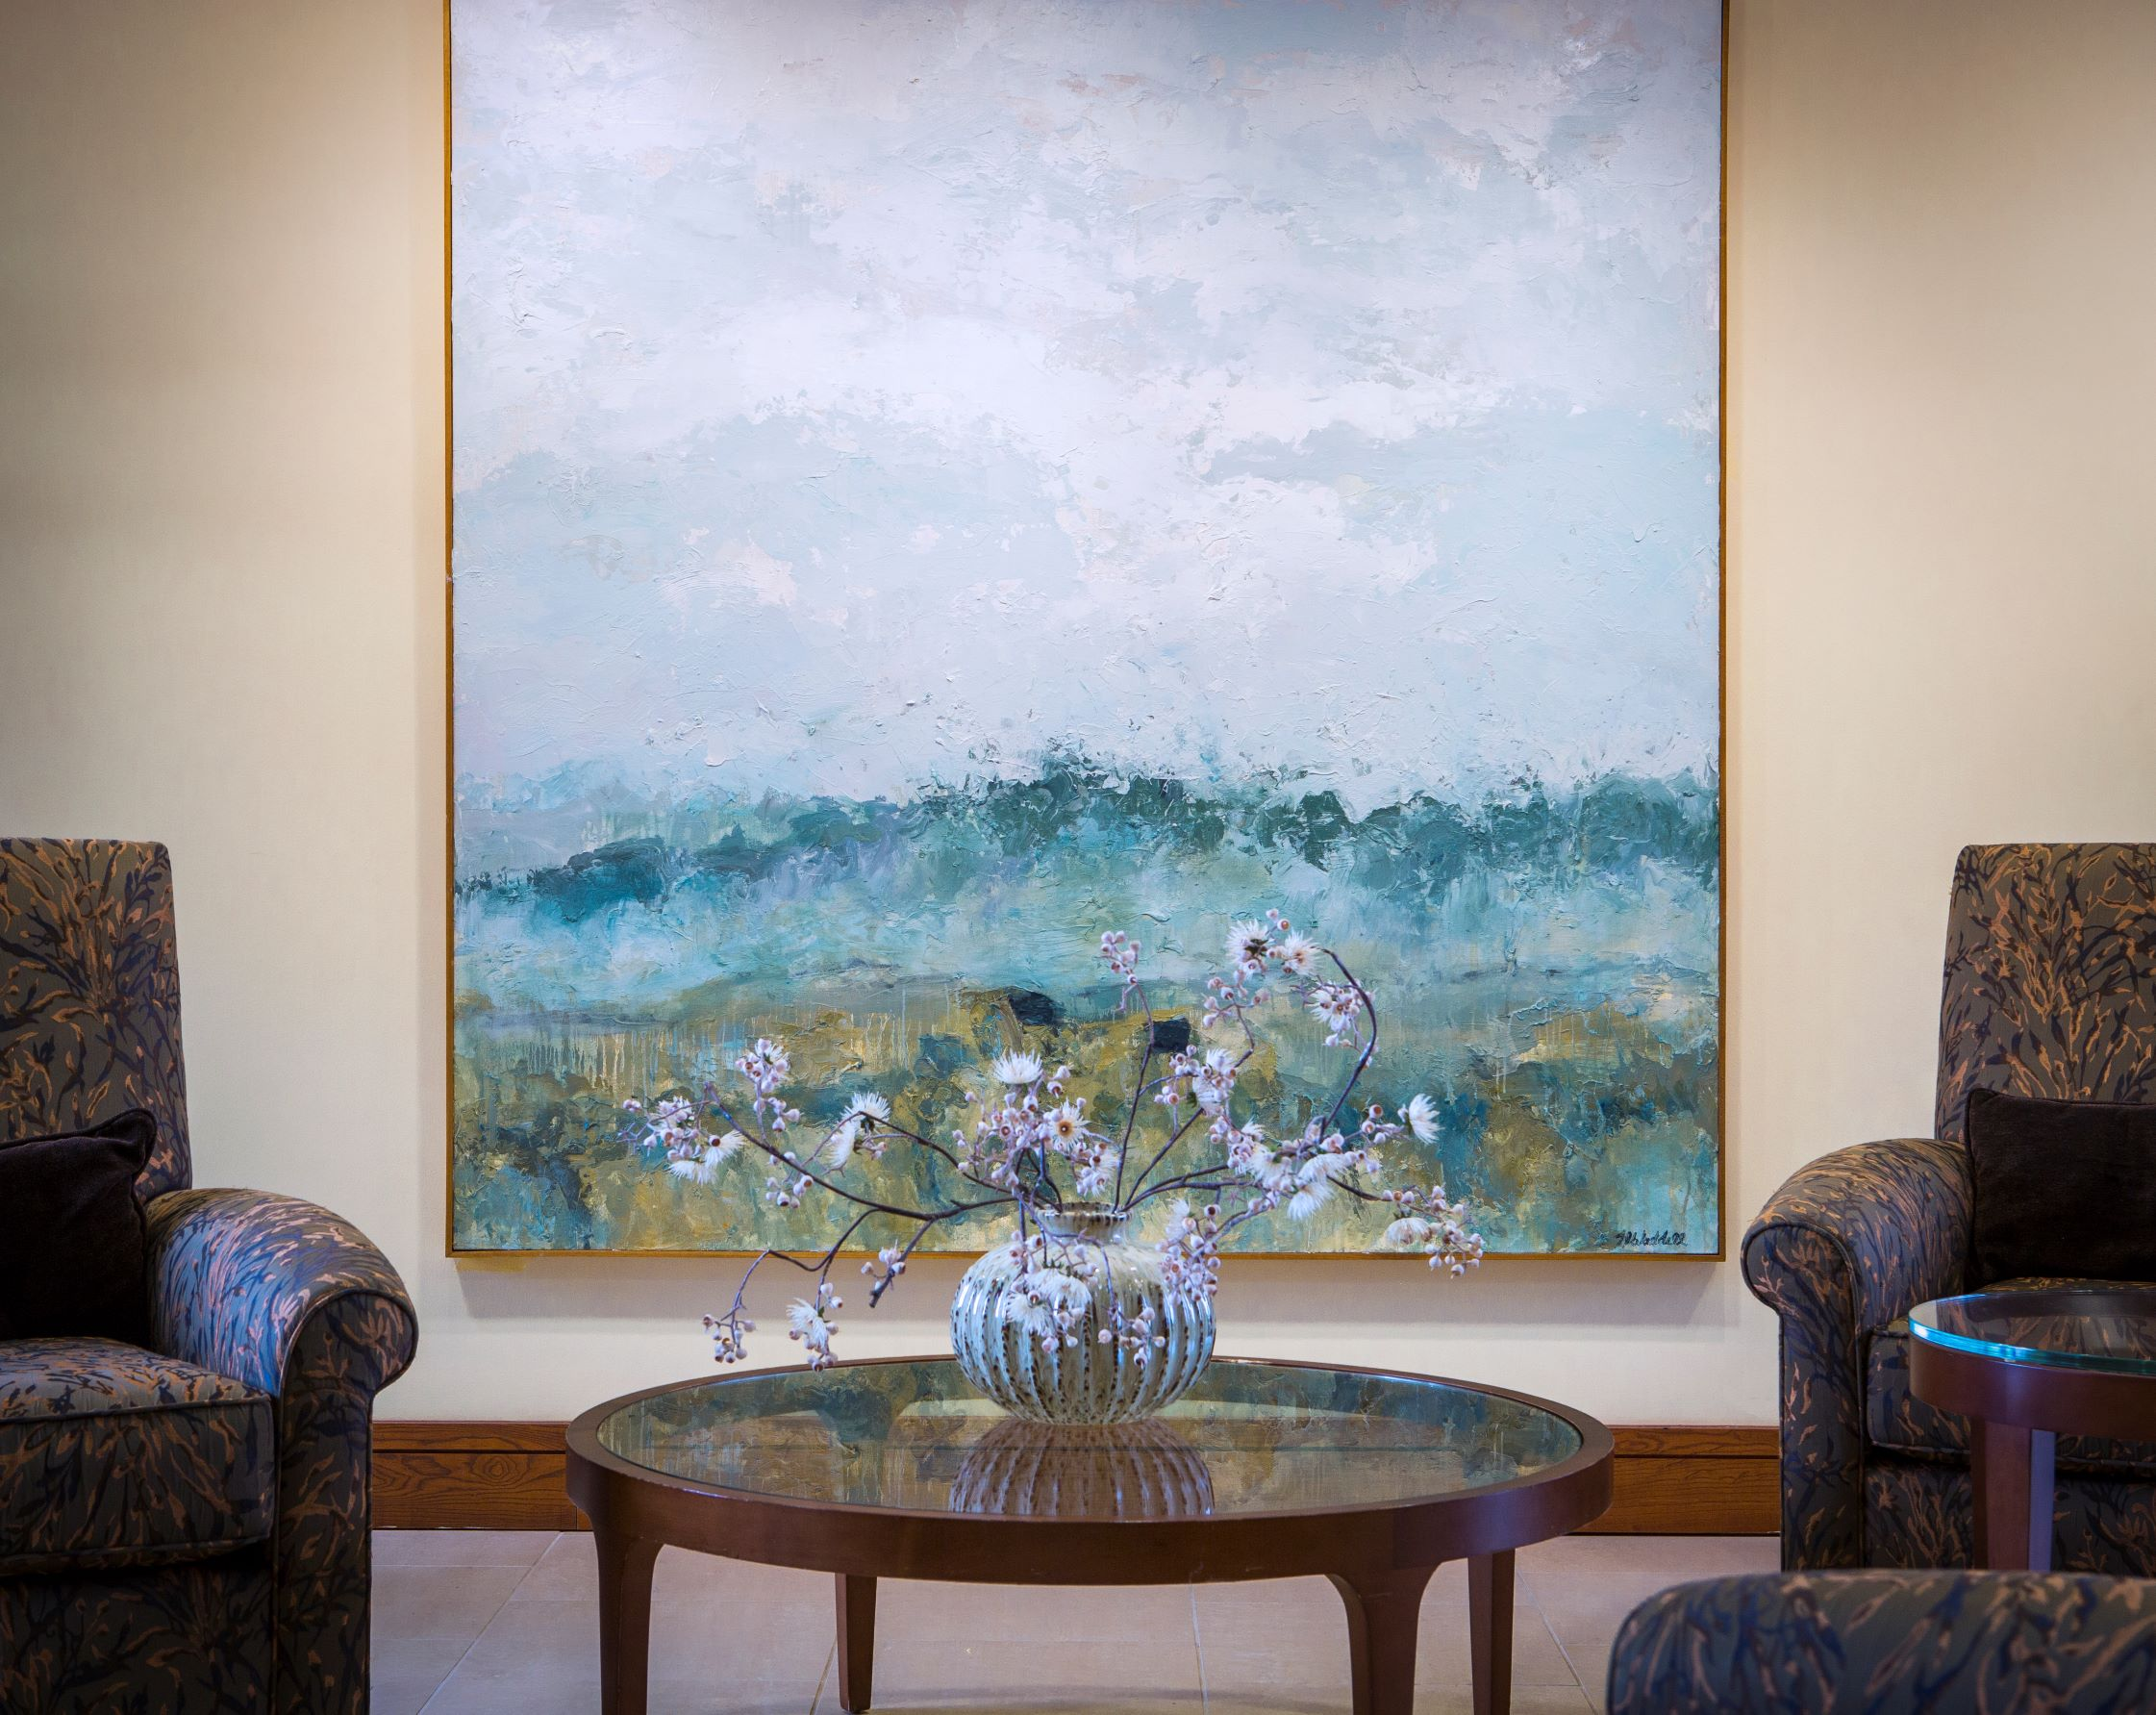 artwork hanging on the wall with two chairs